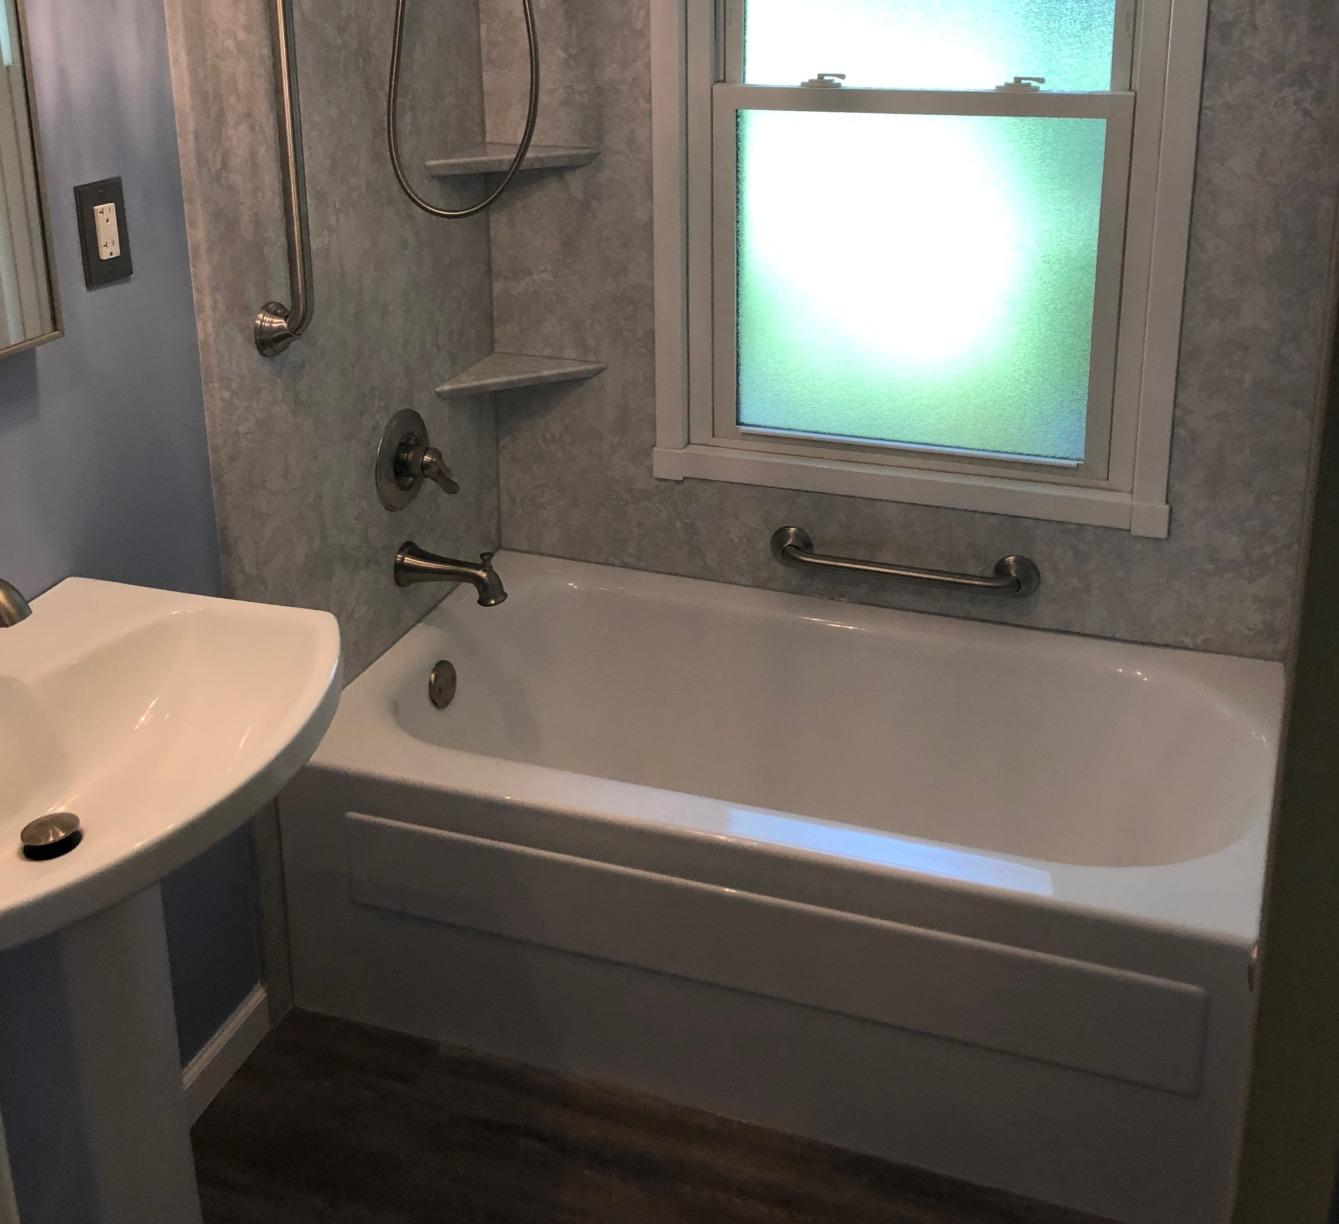 Bathroom Update in Defiance, Ohio - After Photo